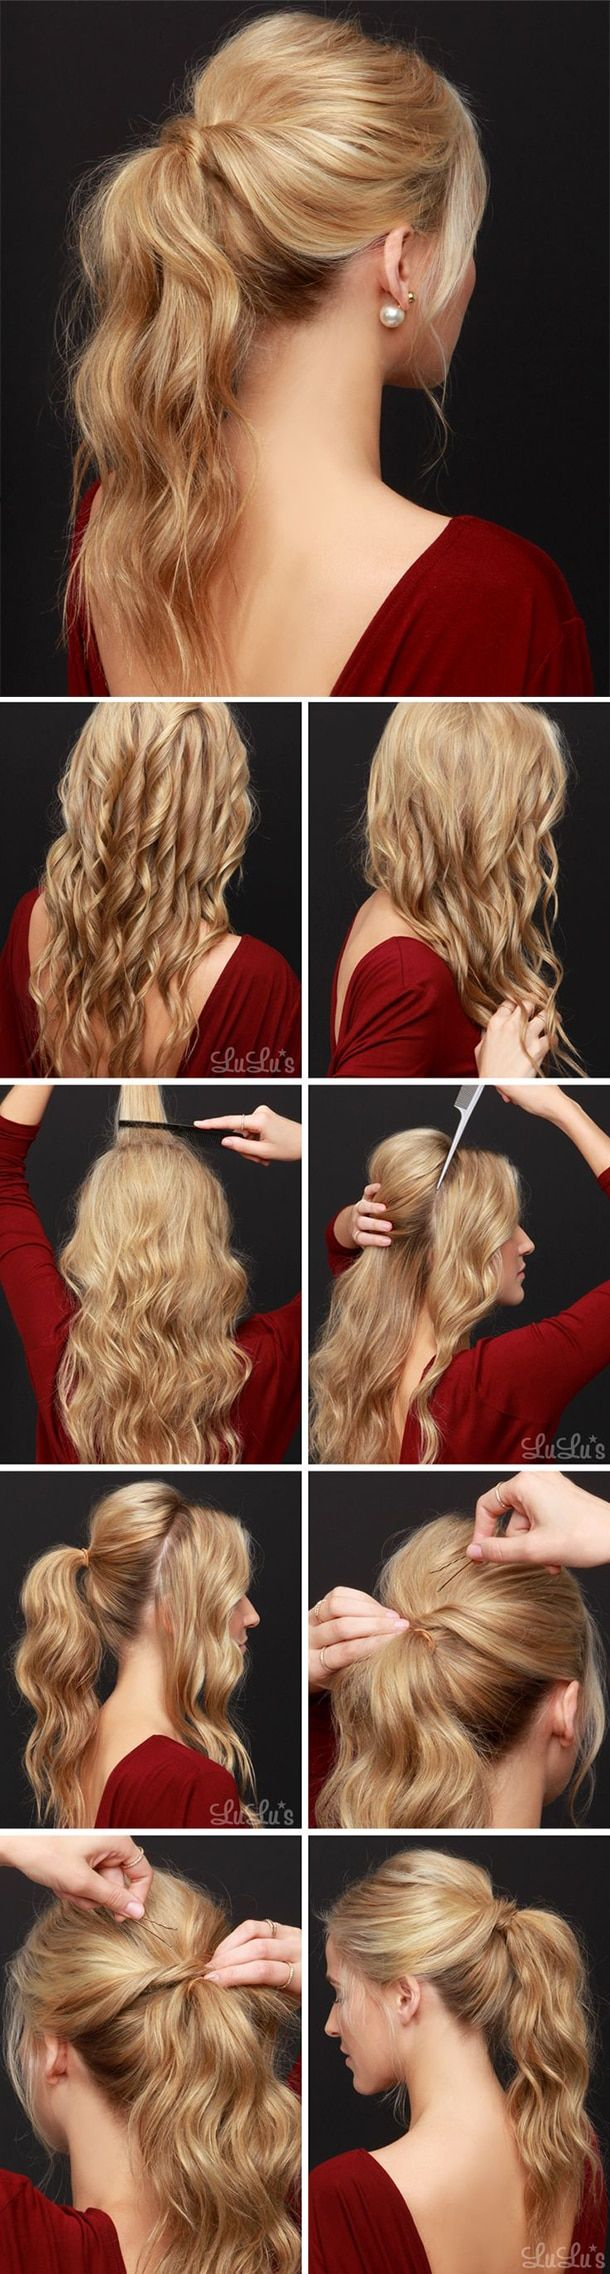 20 Ponytail Hacks For Every Hair Length And Every Event